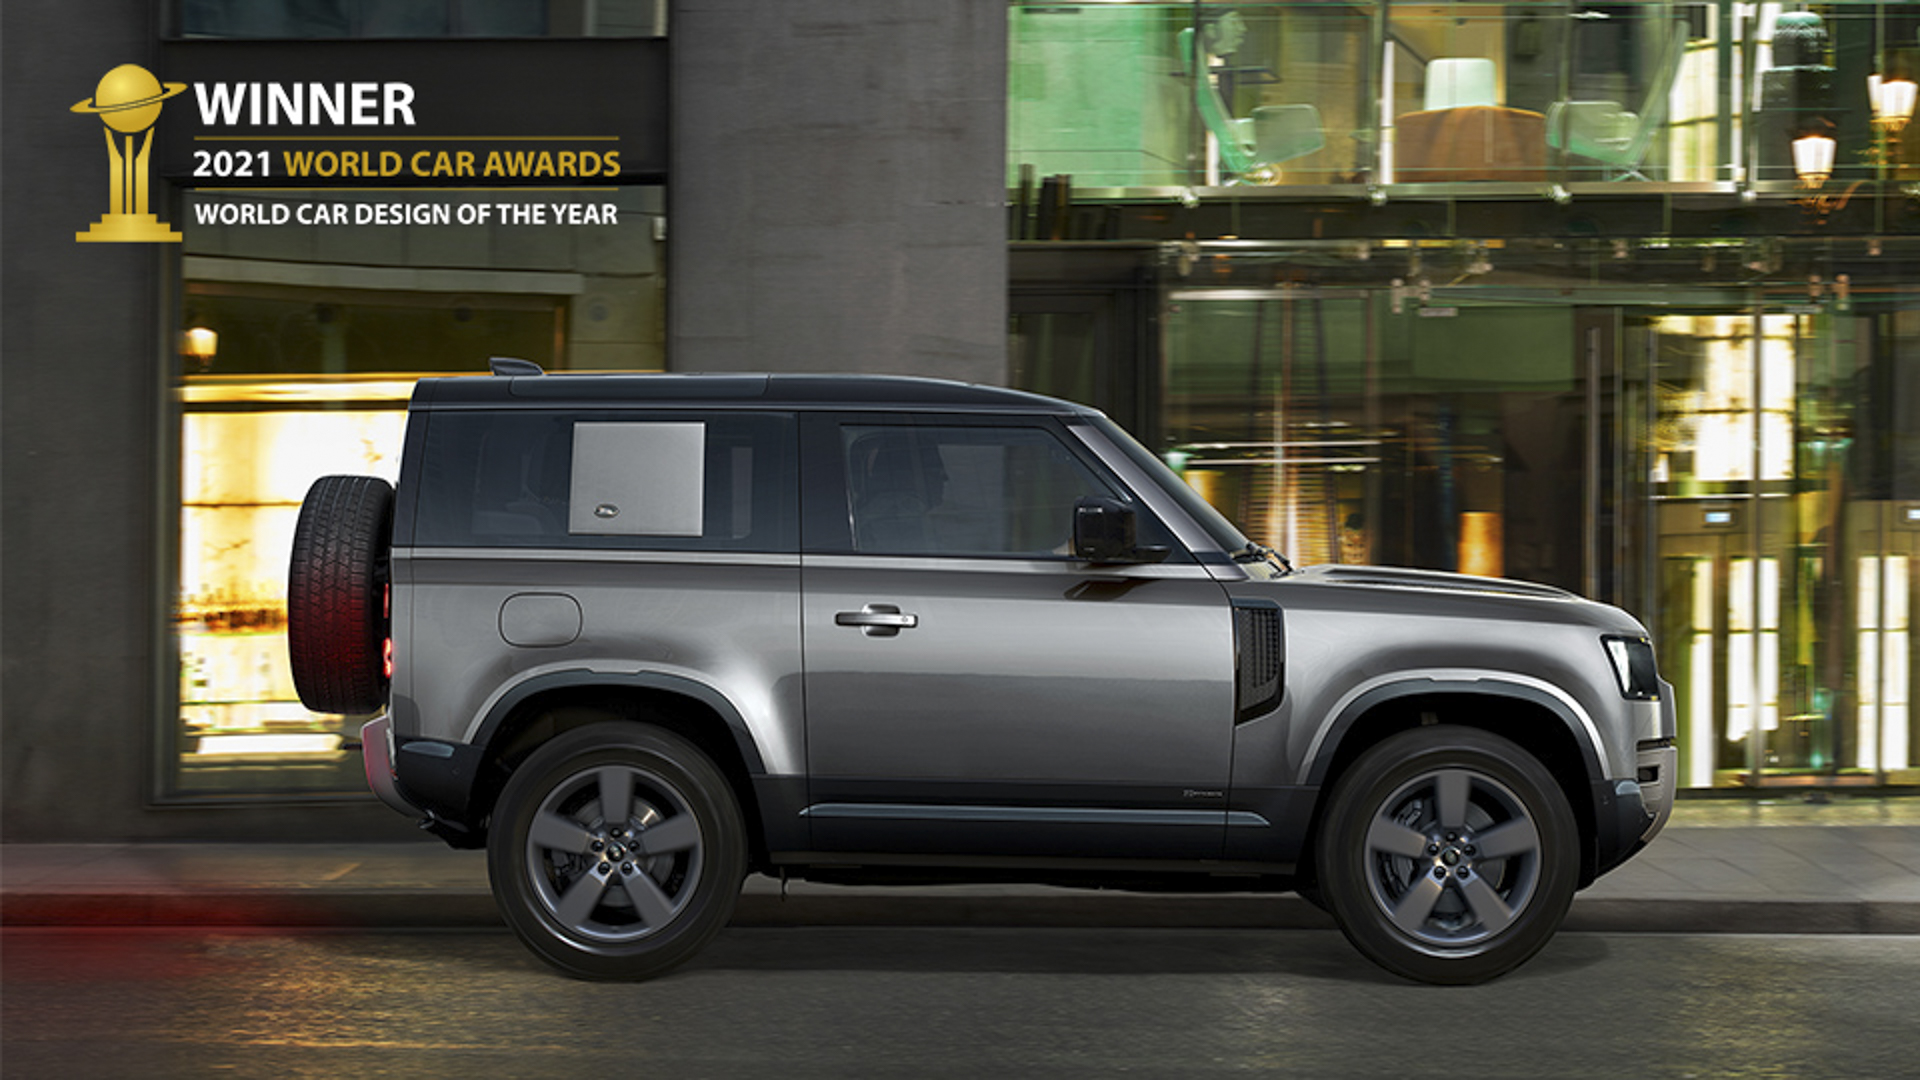 New Land Rover Defender named 2021 World Car Design of the Year